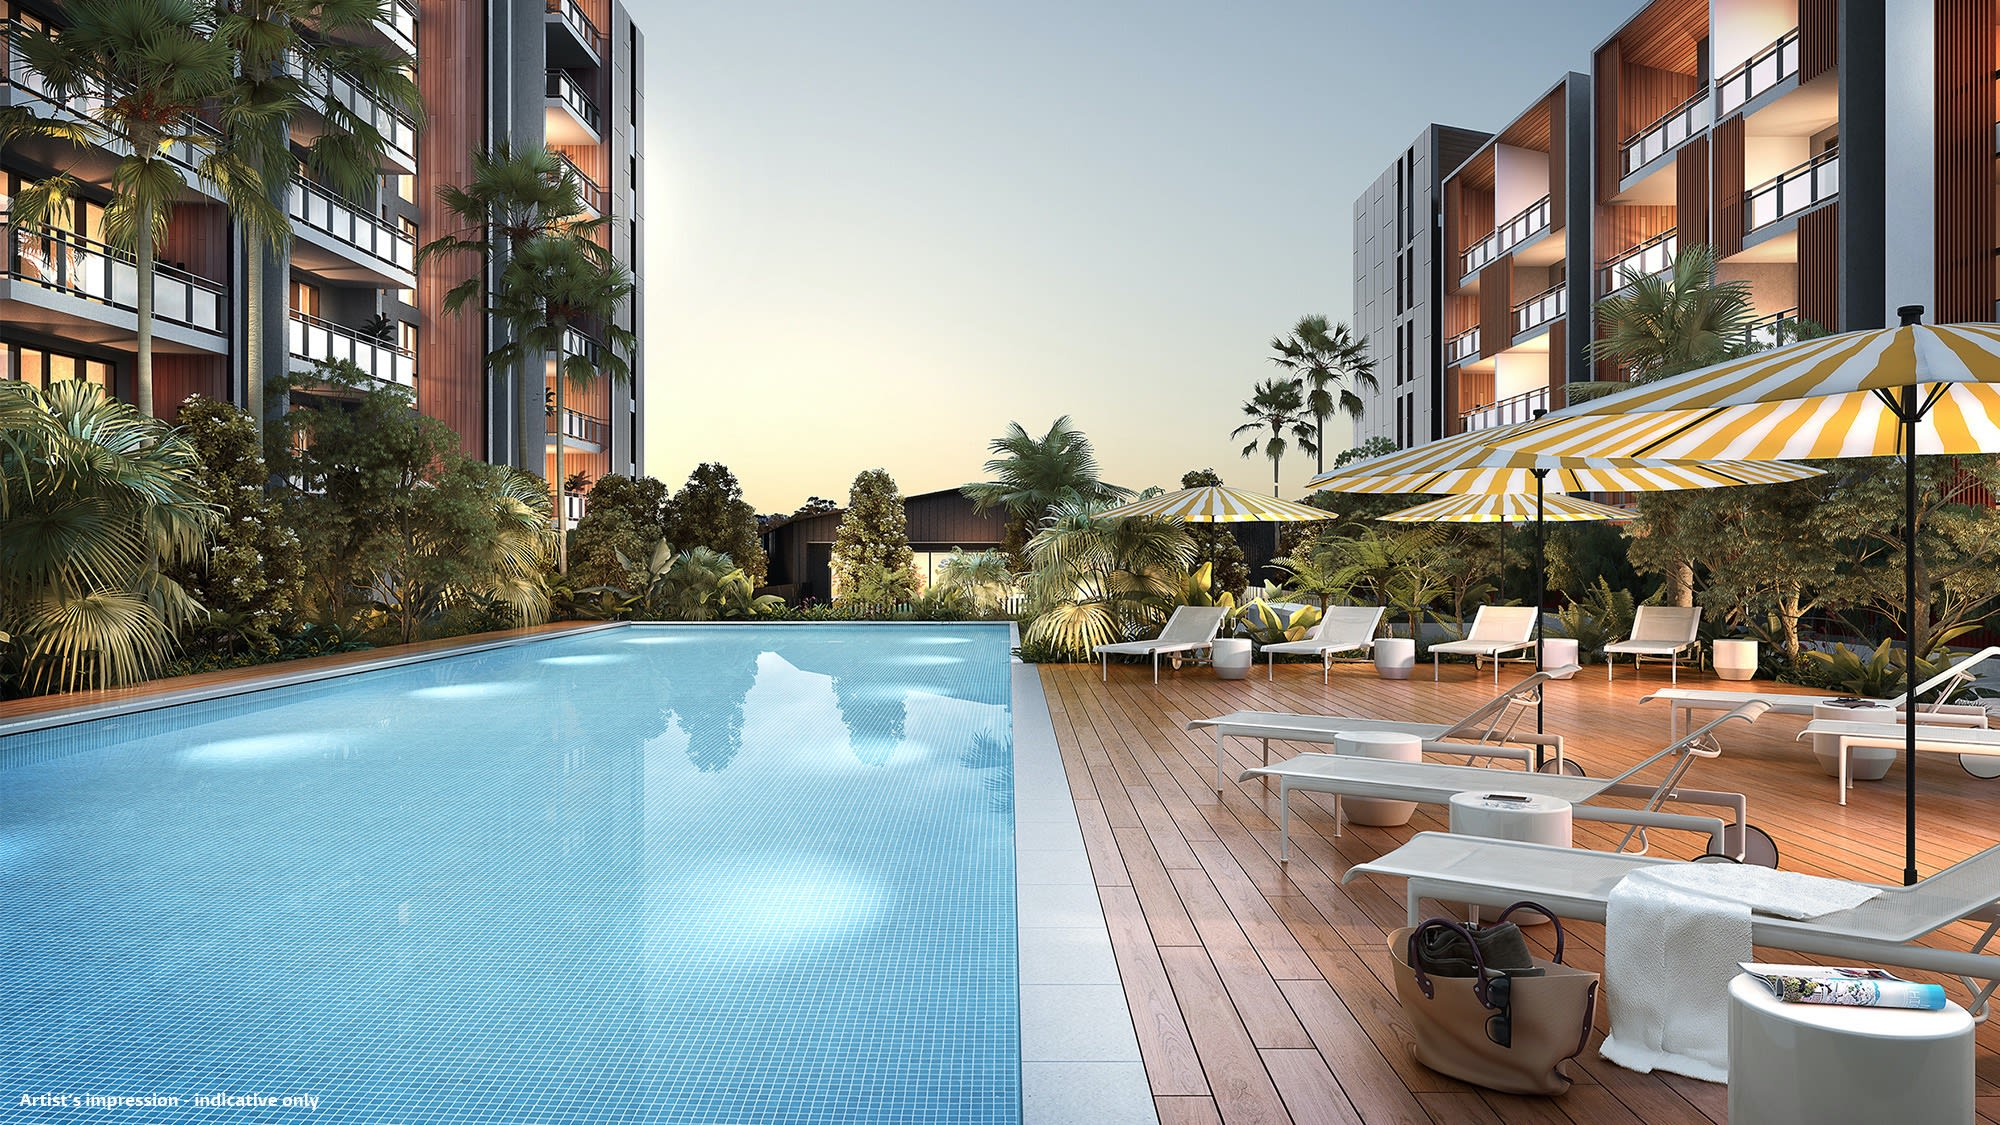 Sustainable architecture shaking up the Sydney property market: Wattblock's top 40 eco apartments